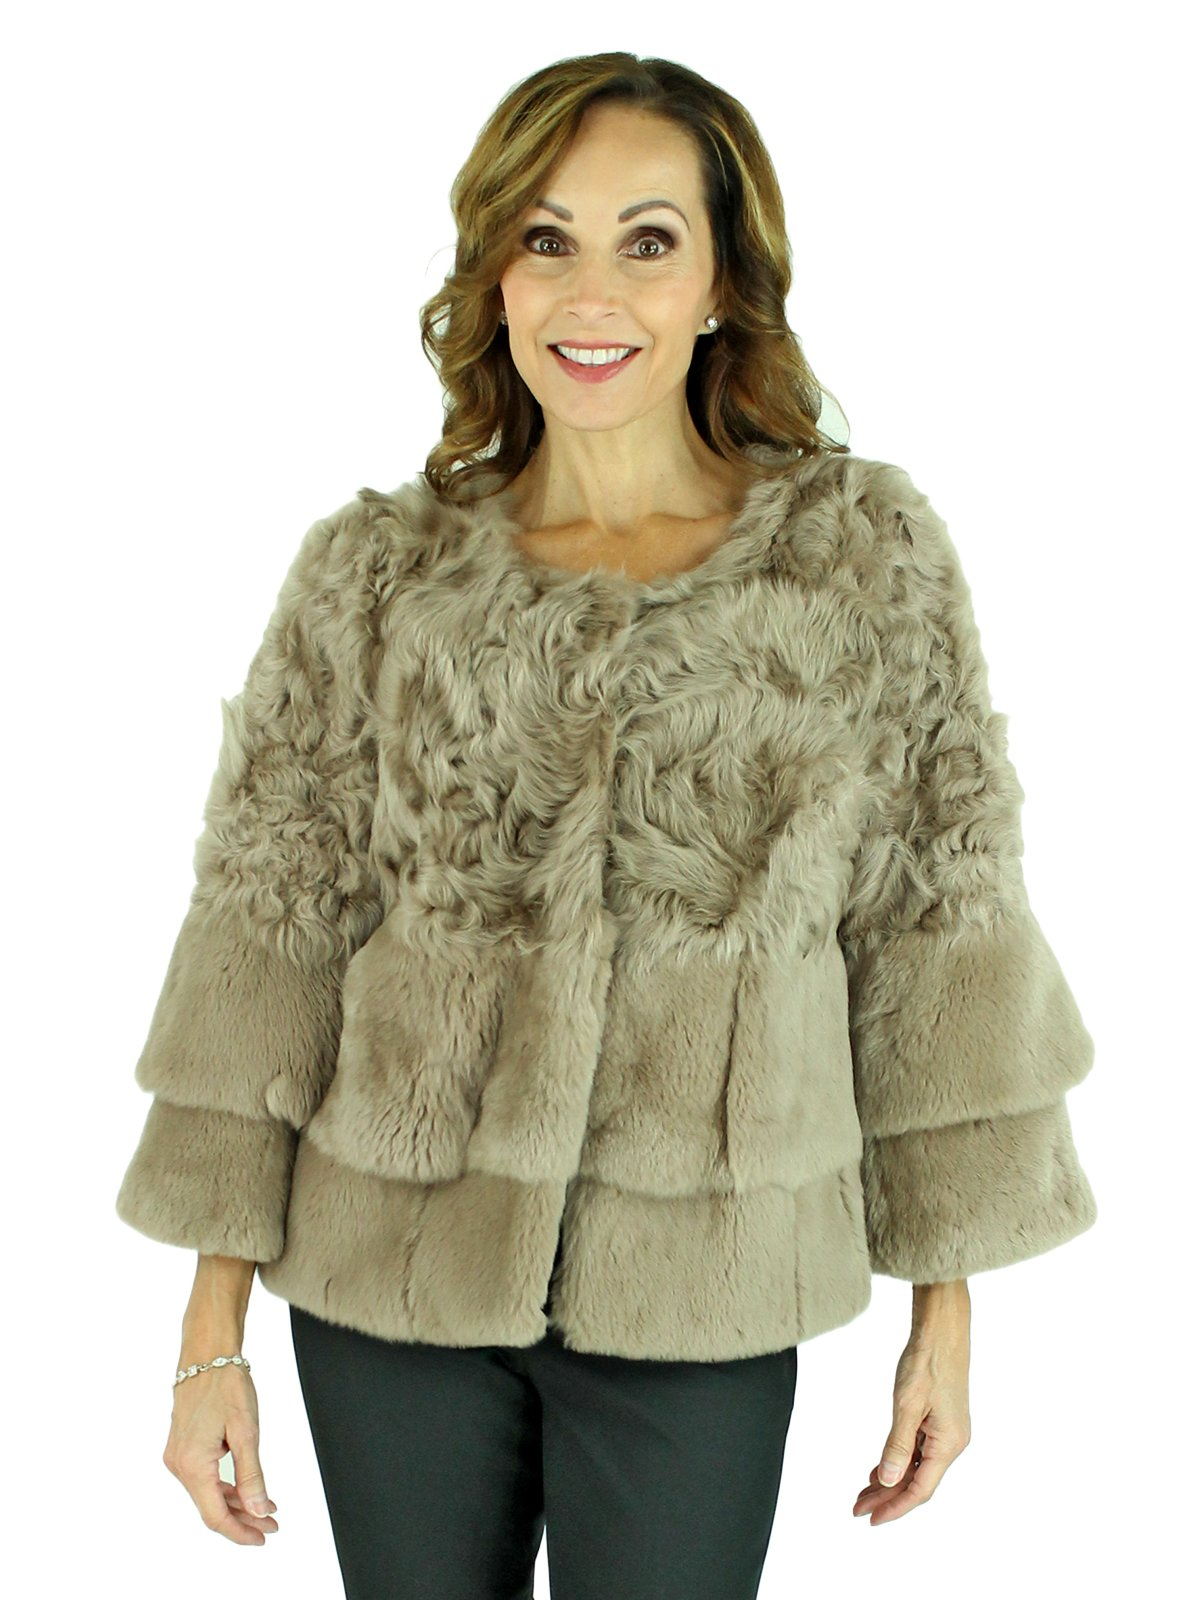 Woman's Beige Curly Lamb and Rex Rabbit Cropped Fur Jacket